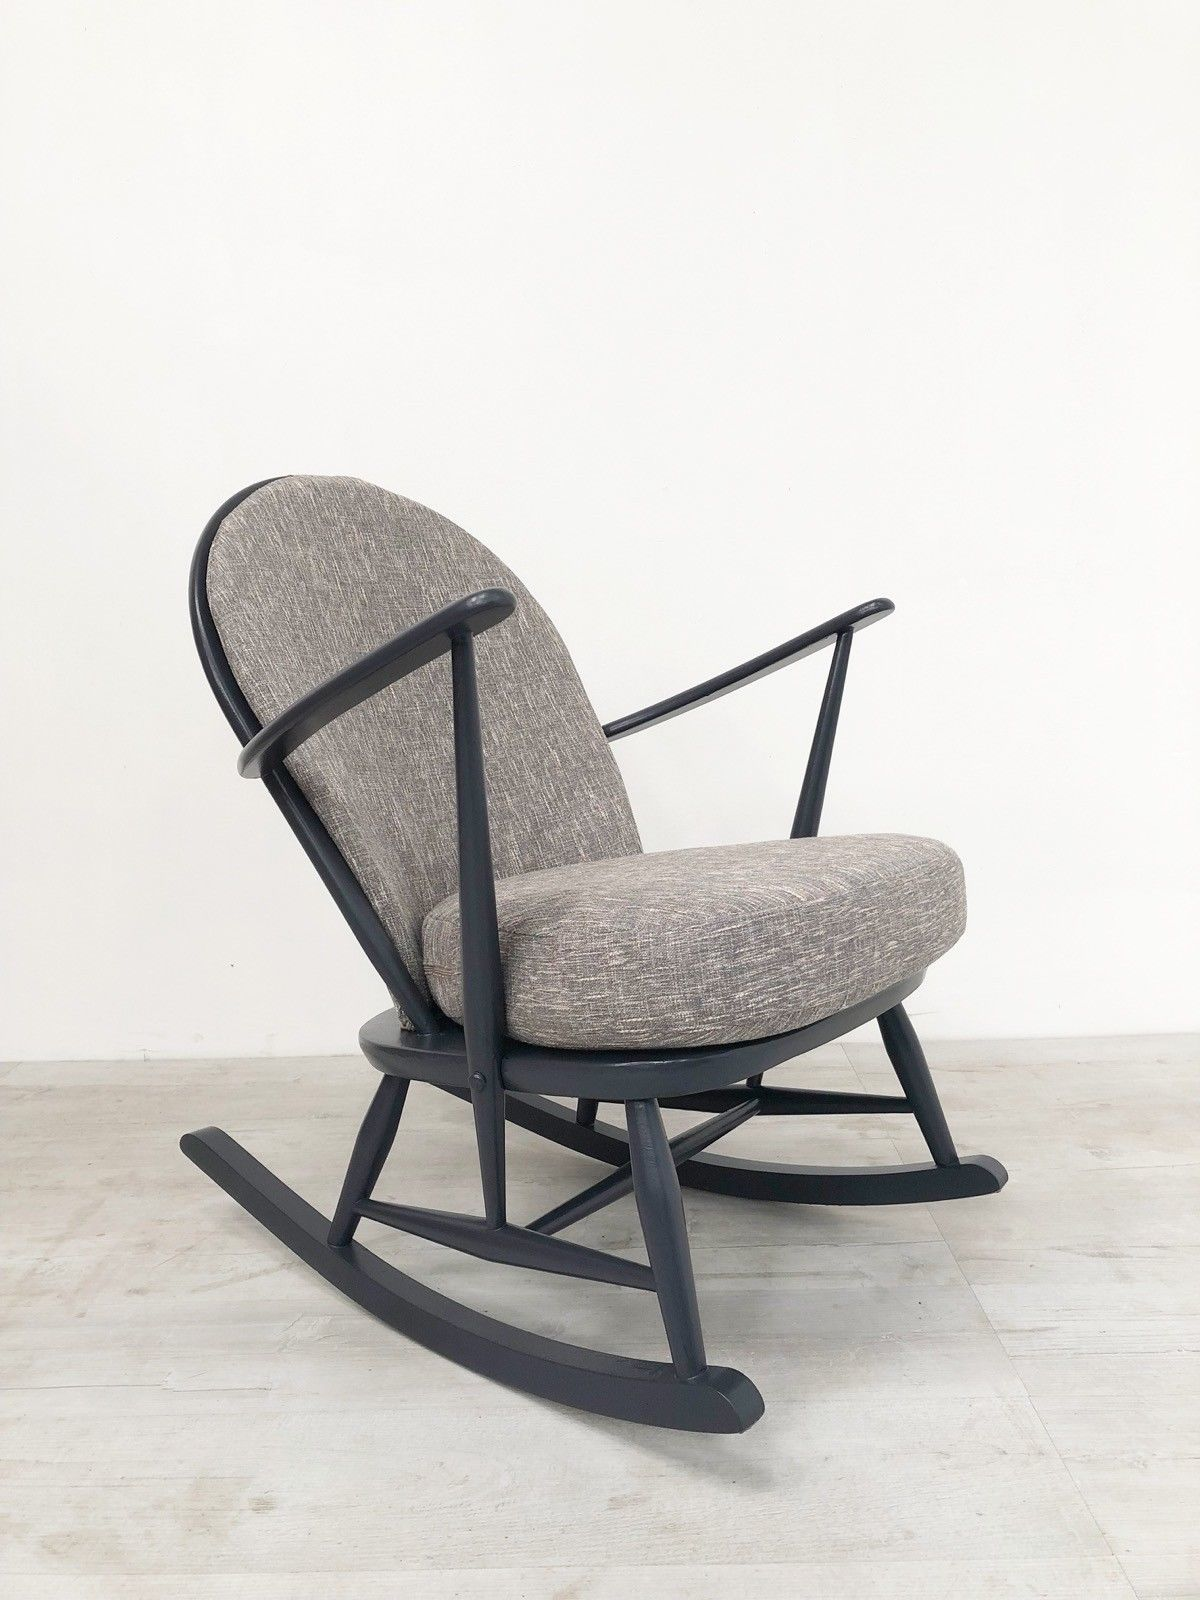 details-about-ercol-windsor-vintage-1960-s-rocking-chair-in-graphite-grey-with-new-cushions